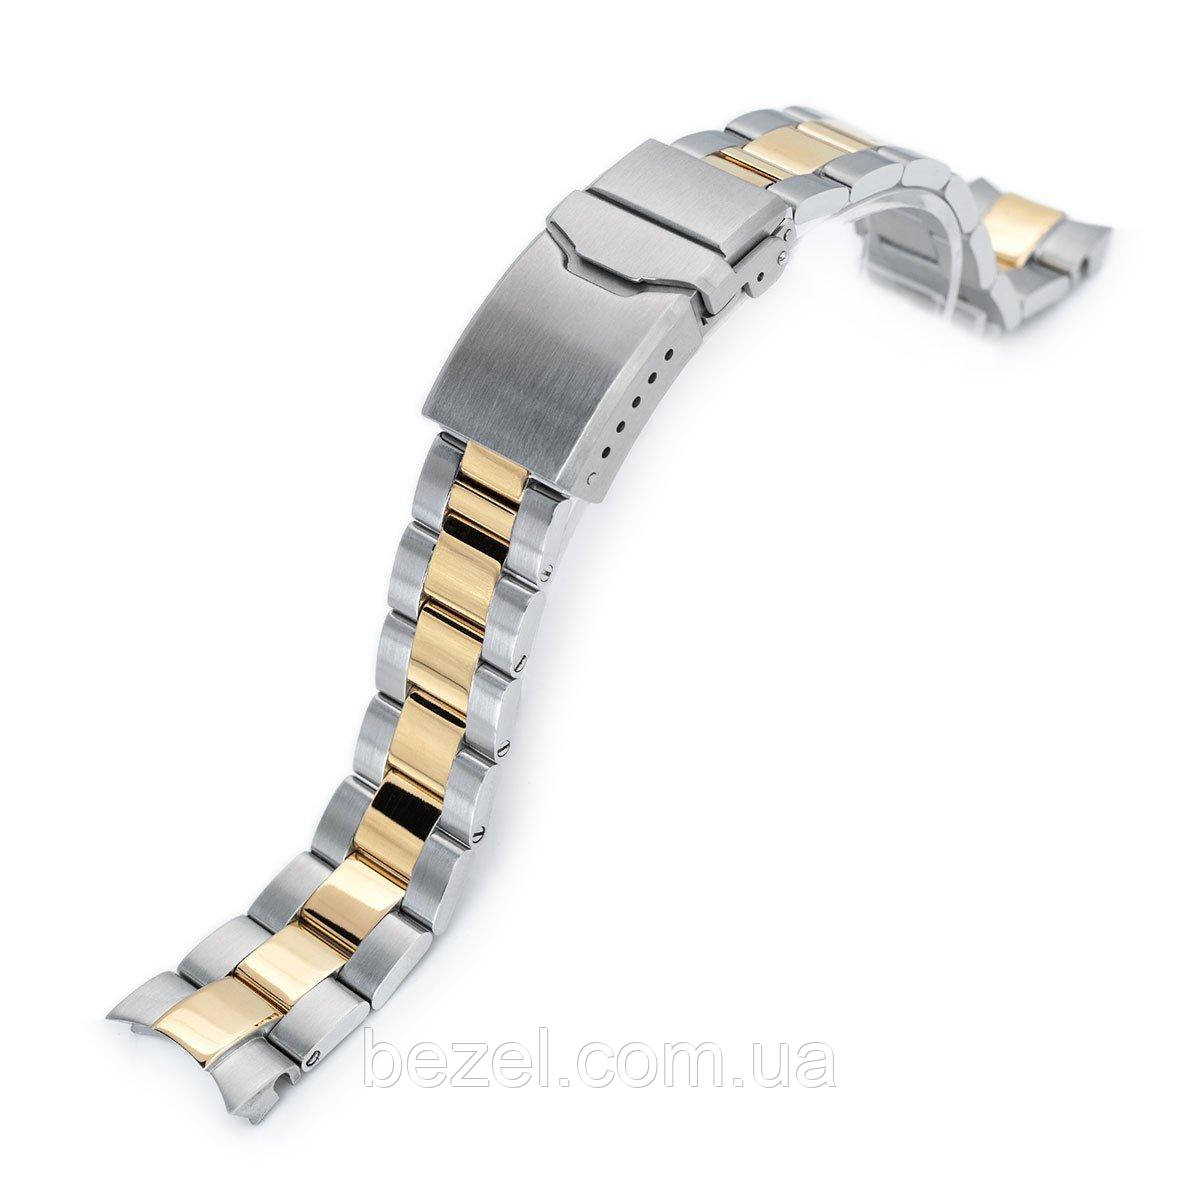 20mm Super 3D Oyster watch band for Seiko Alpinist SARB017, Two Tone IP Gold, Button Chamfer